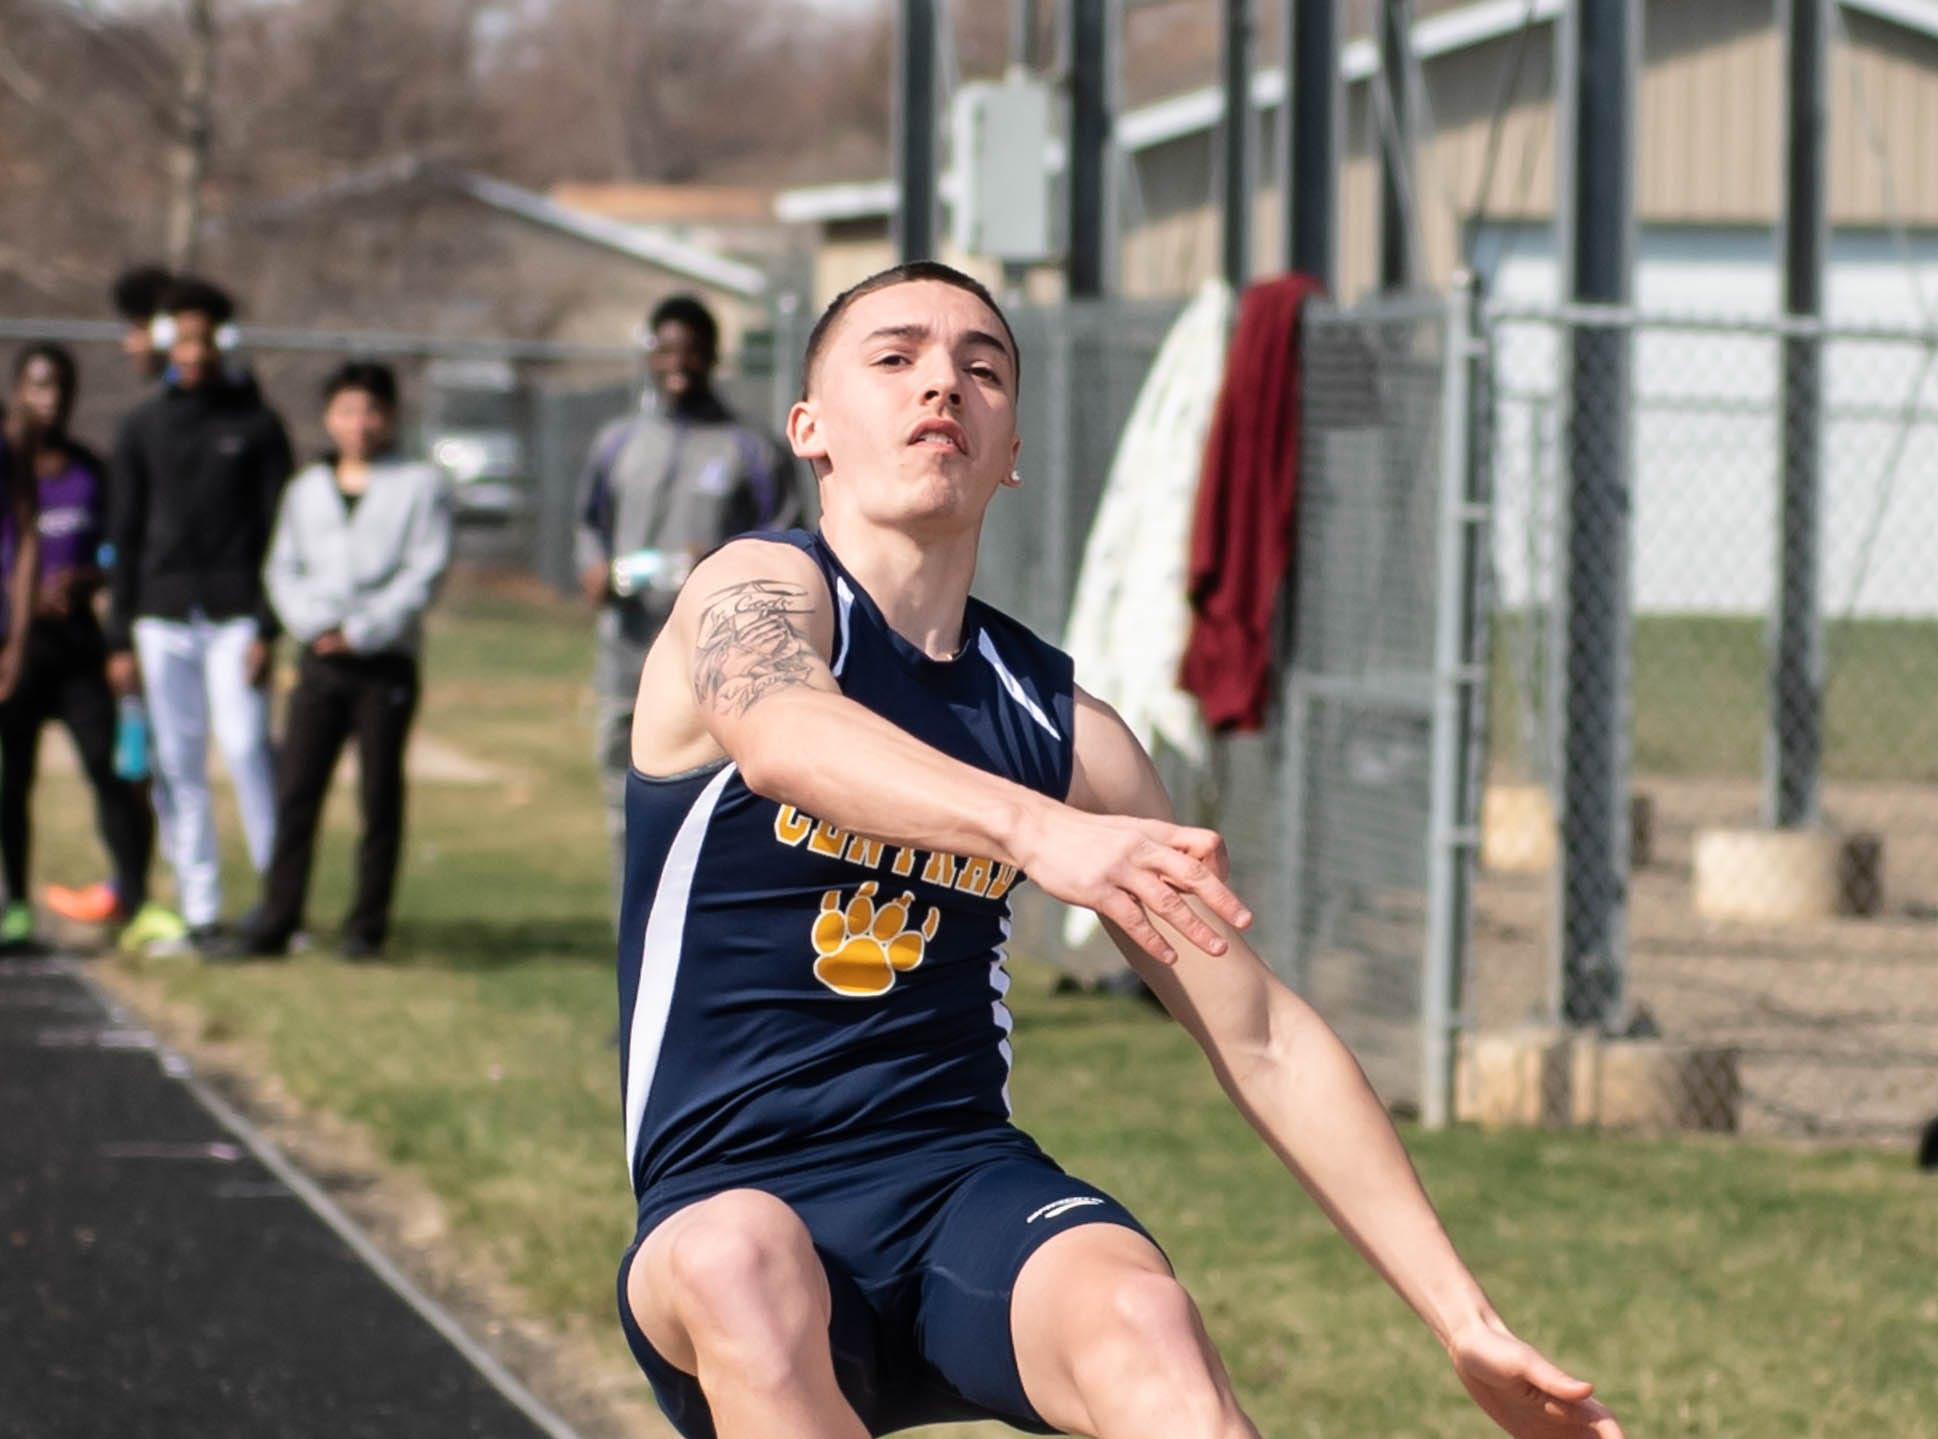 Battle Creek Central's Tagen Sims competes in the long jump at Lakeview High School during a dual meet held on 4/9/19.